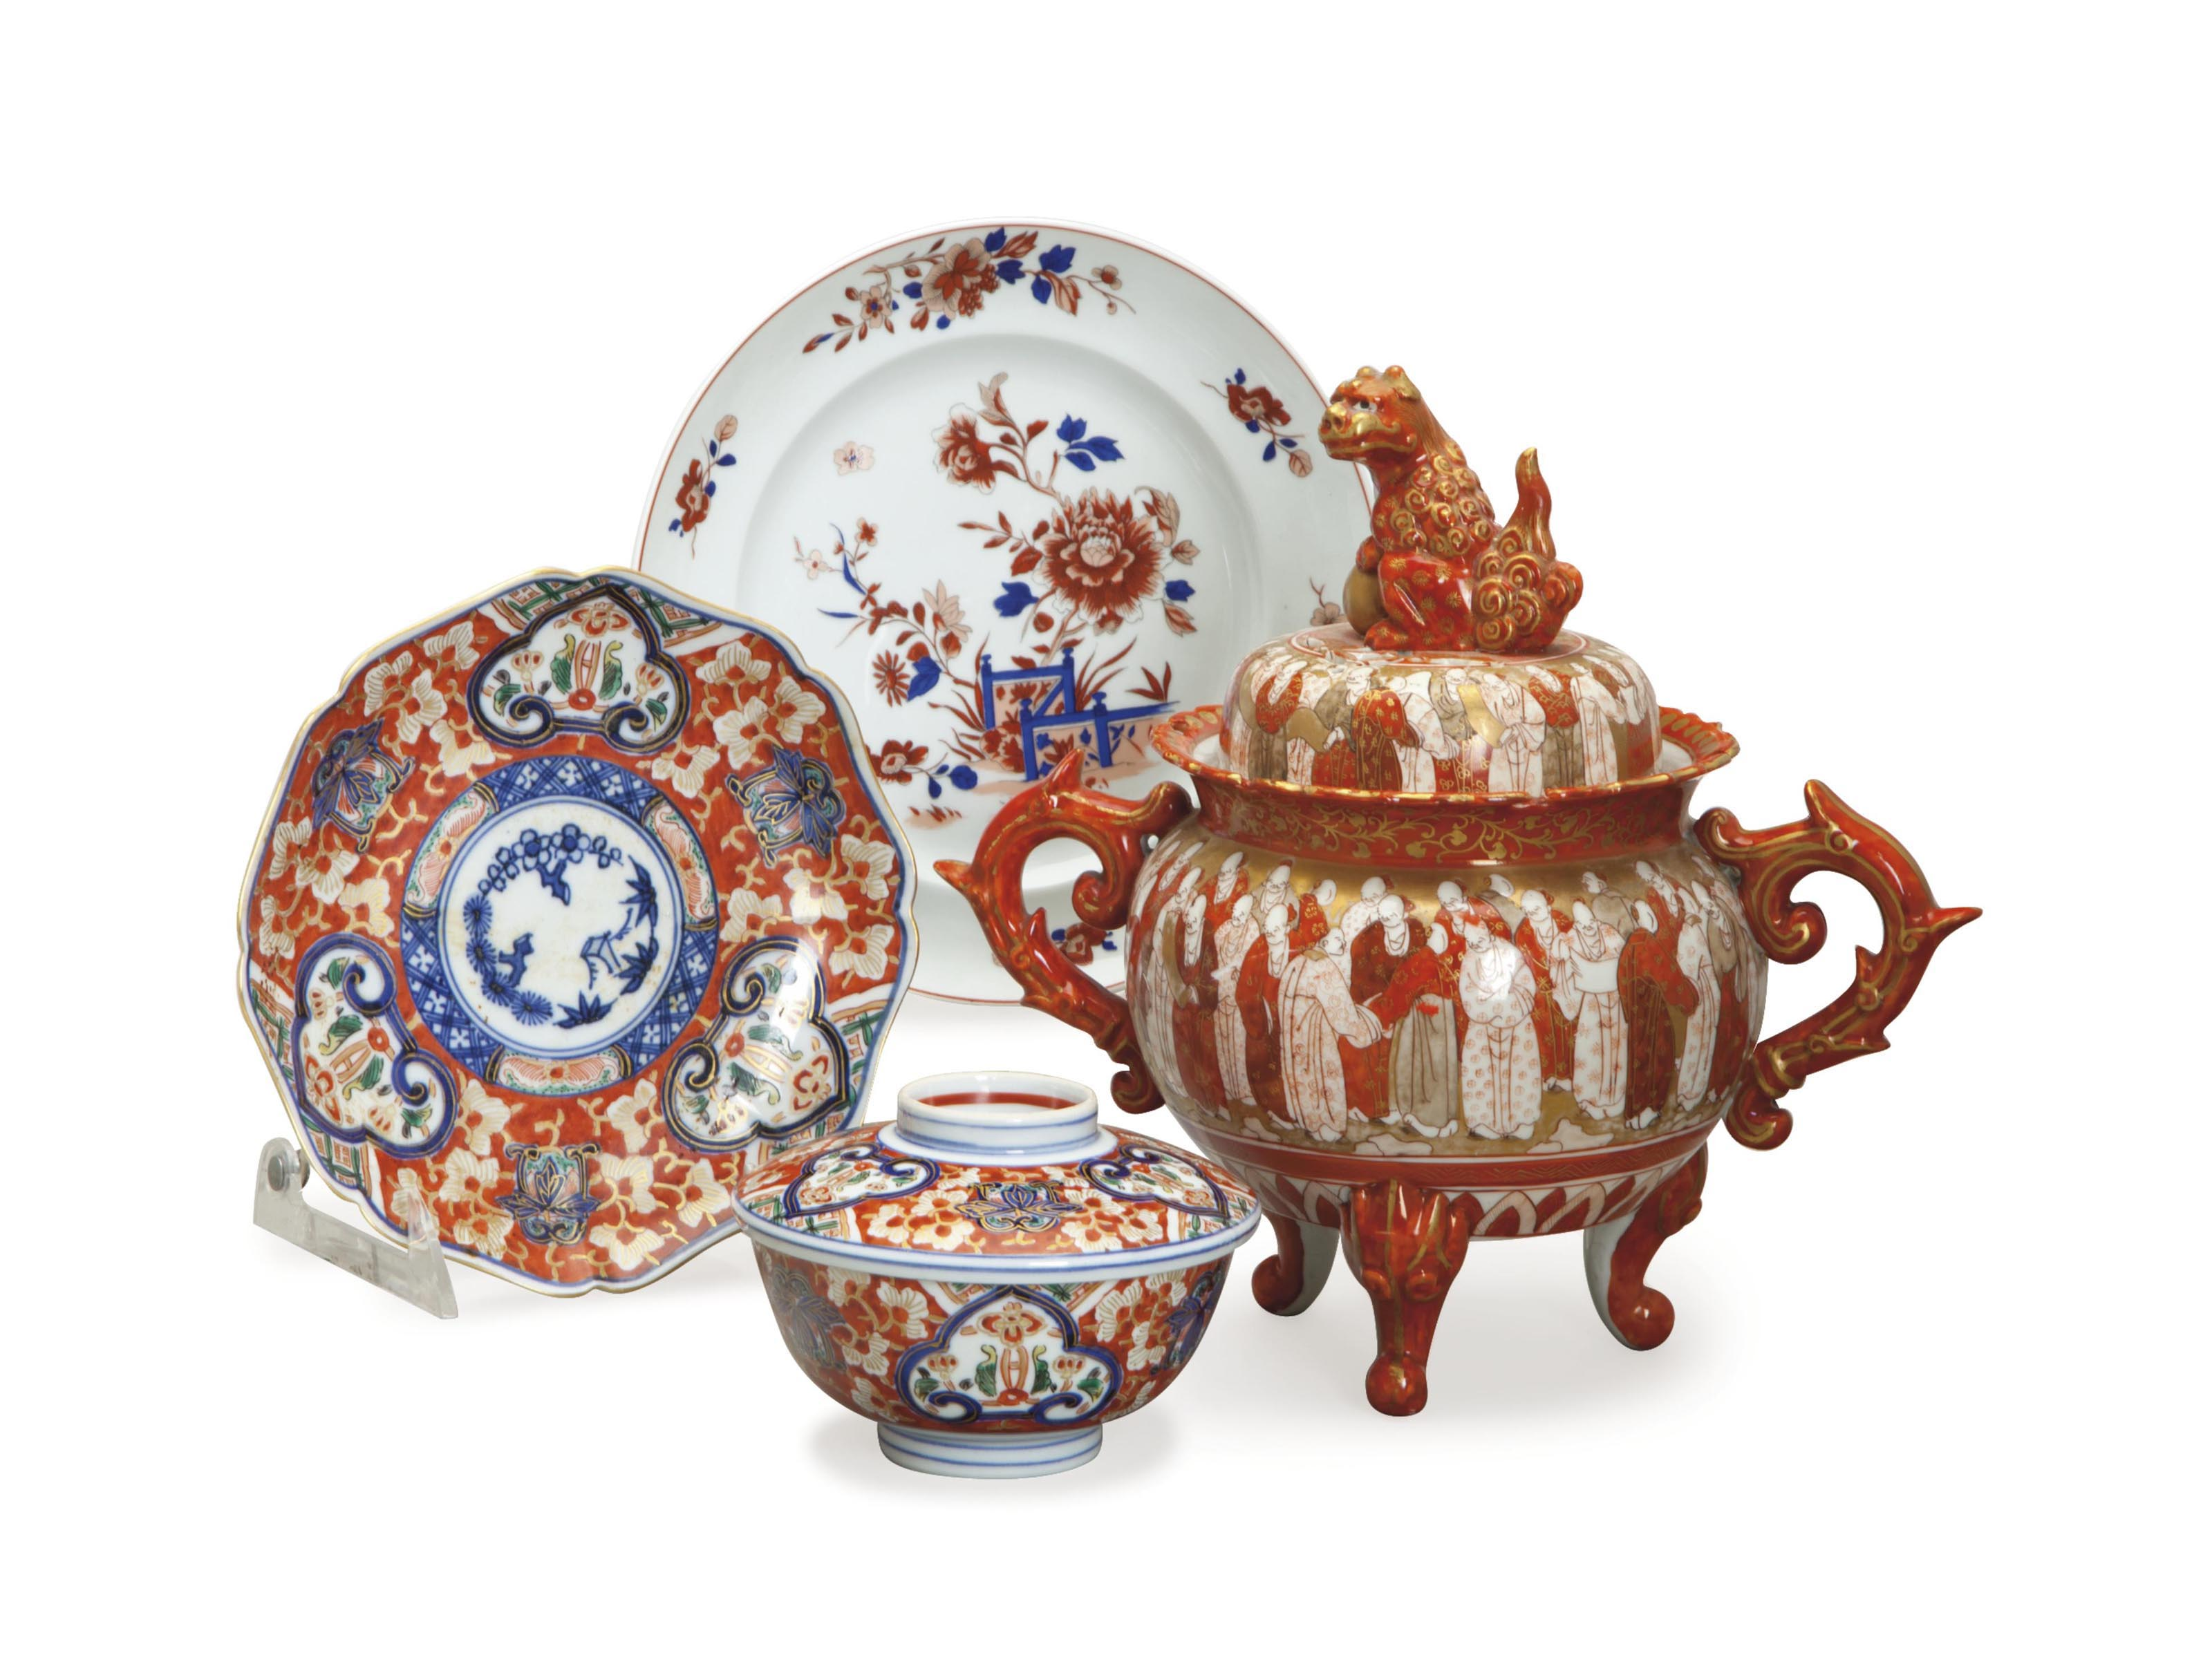 A PORTUGUESE PORCELAIN PART DINNER SERVICE AND A GROUP OF JAPANESE IMARI WARES,